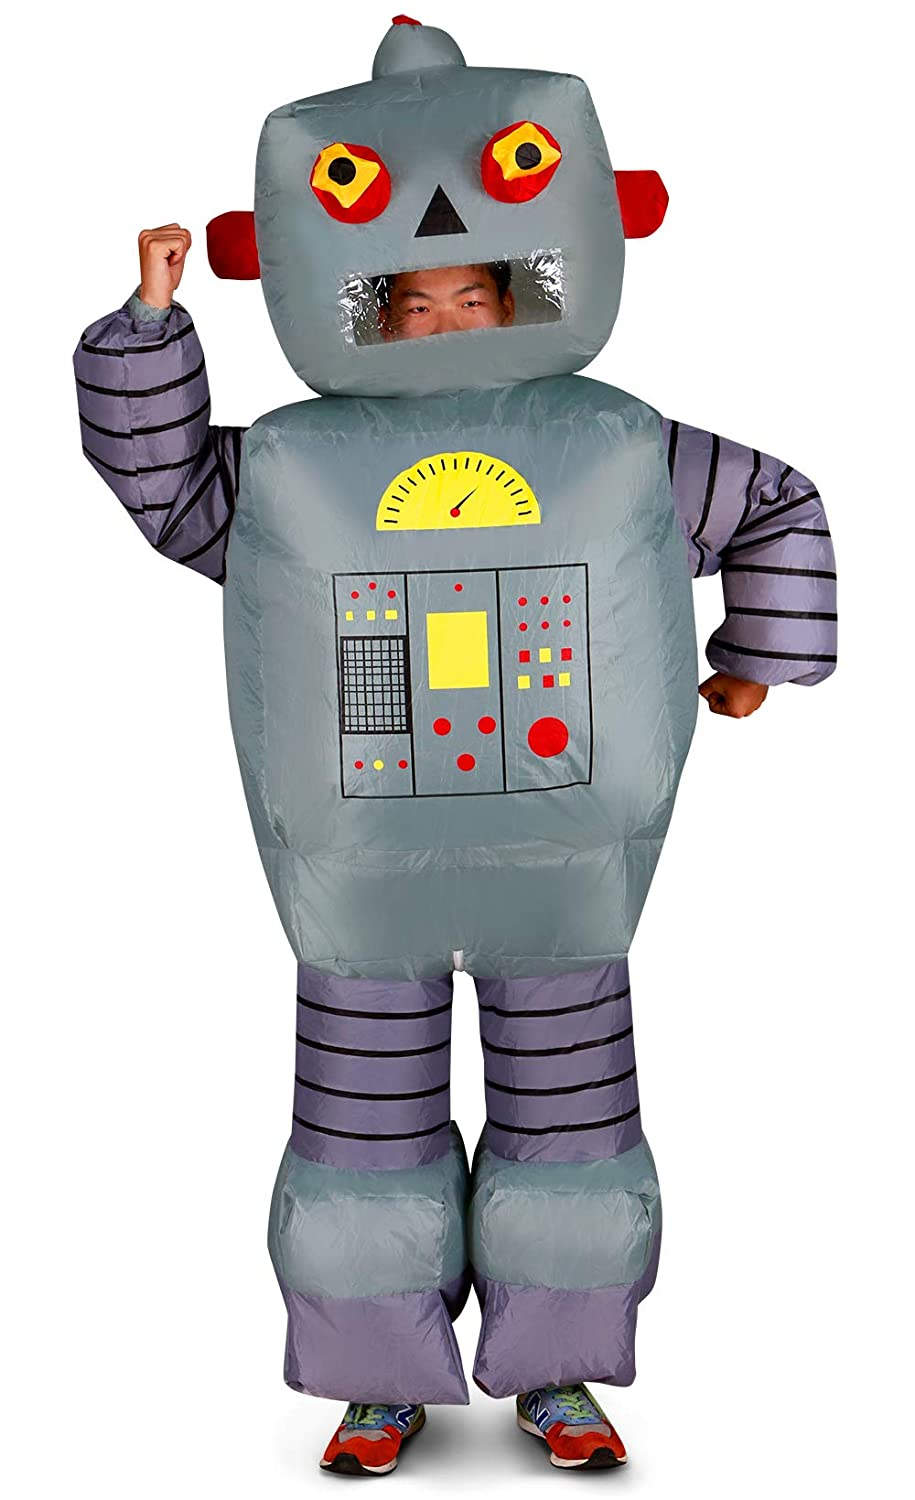 Costume Halloween Robot.Holidayana Inflatable Halloween Costume Robot Halloween Costumes For Men And Women Blow Up Adult Costumes Amazon In Clothing Accessories